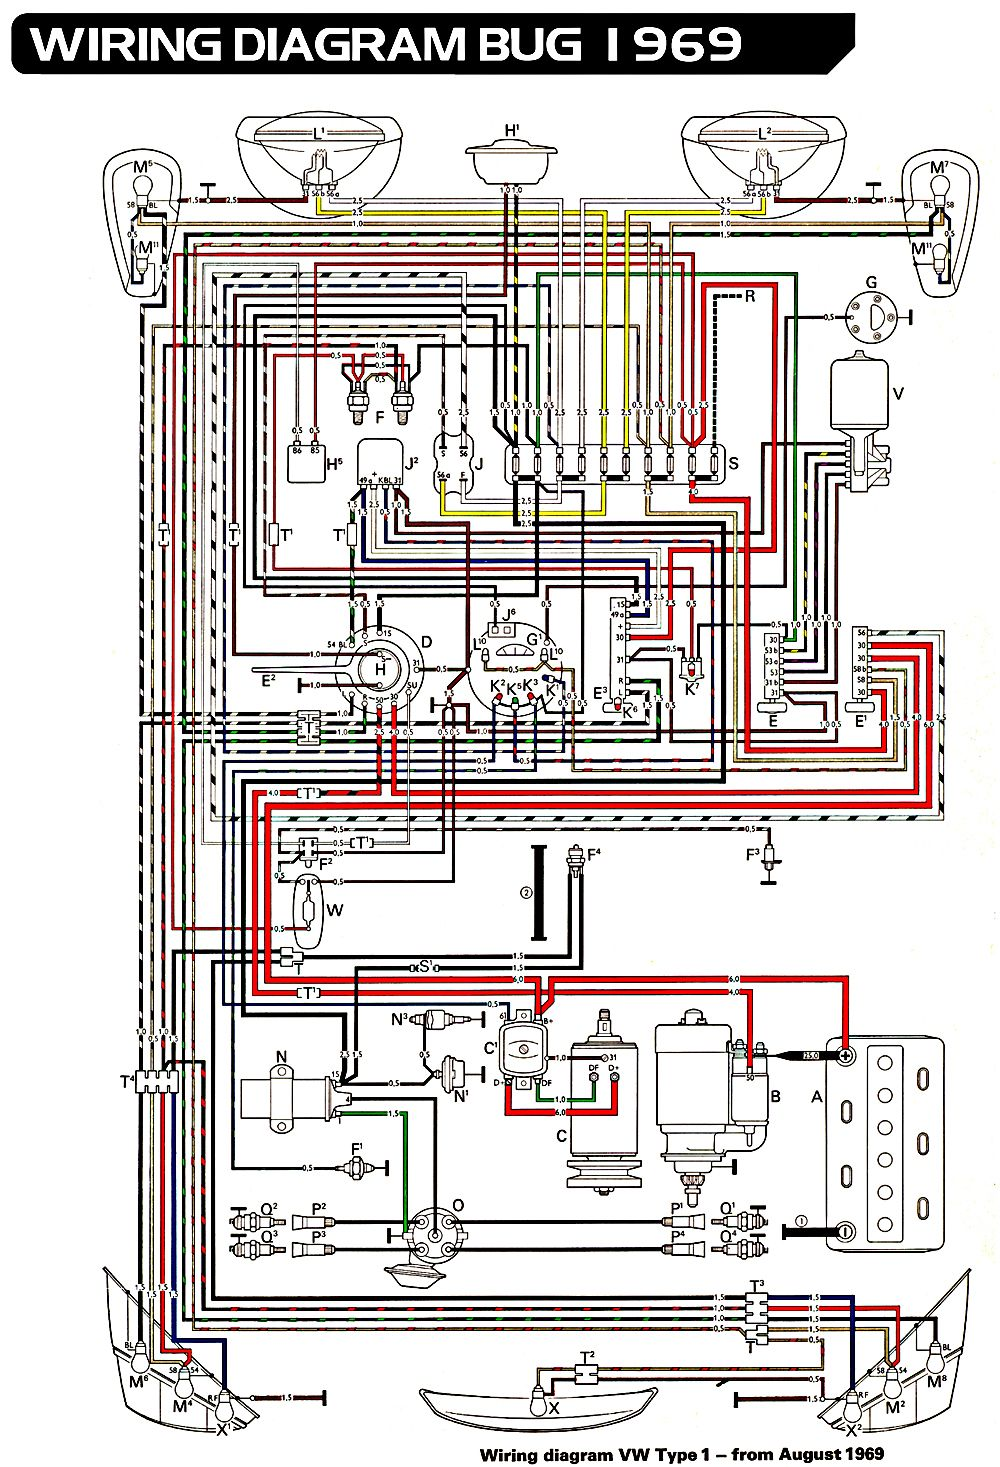 wiring harness for 1966 vw bug for pinterest schema wiring diagram rh 6 1 3 marias grillrestaurant de